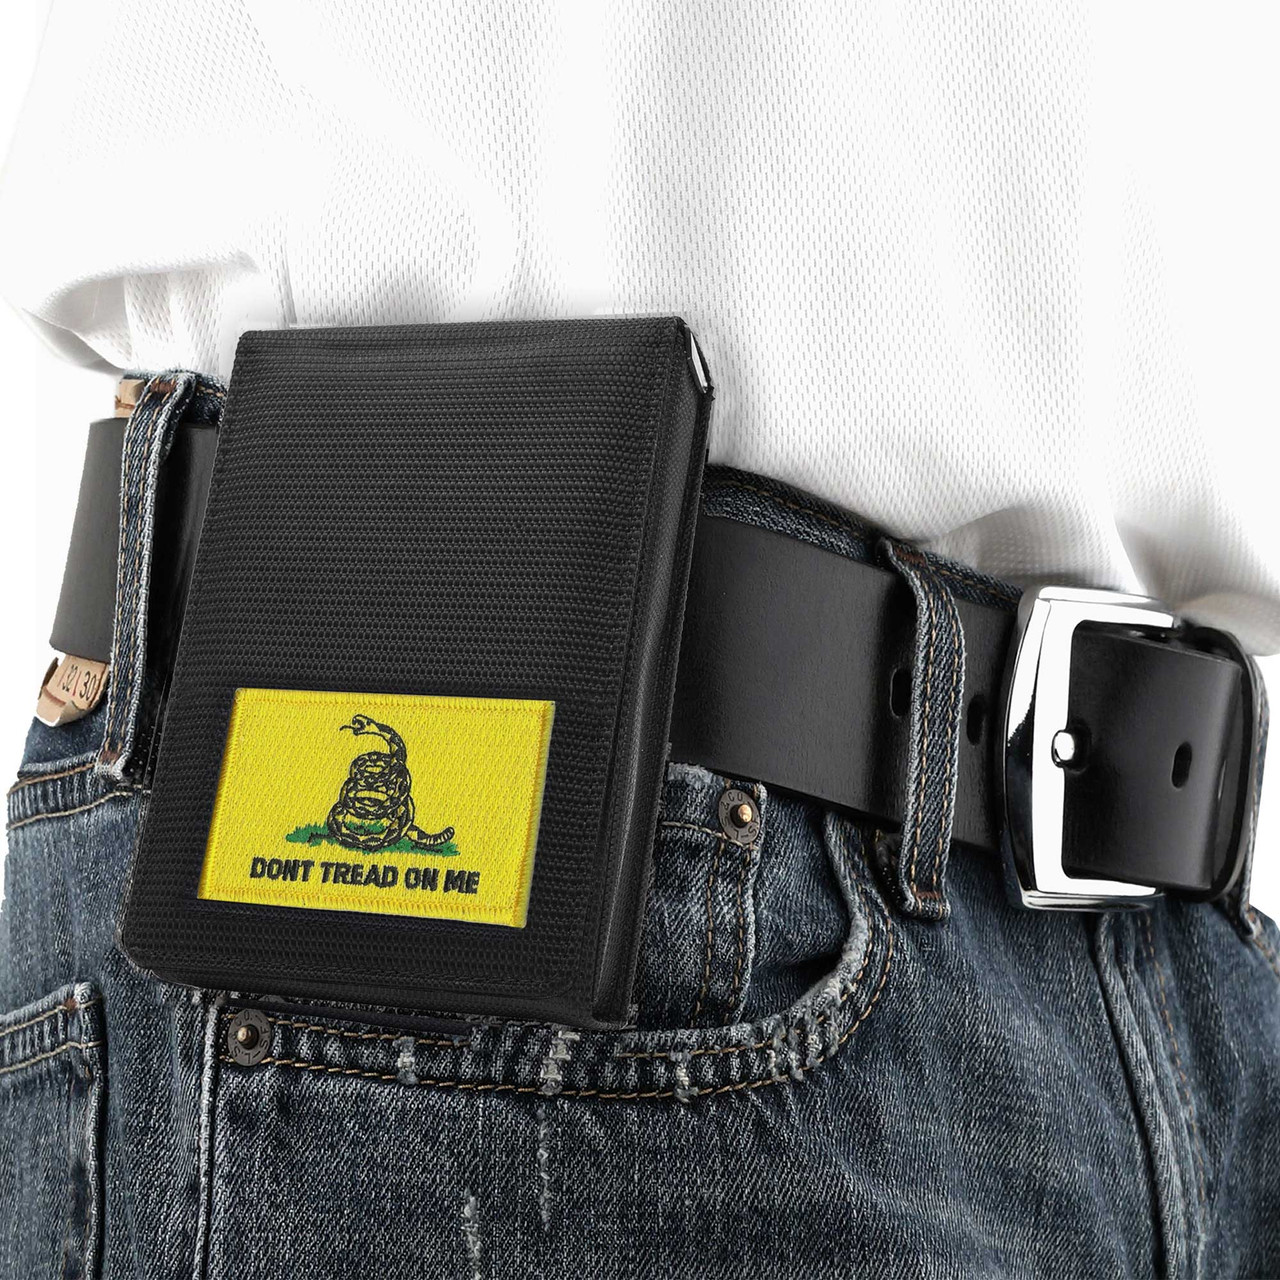 Mossberg MC1SC Don't Tread on Me Holster